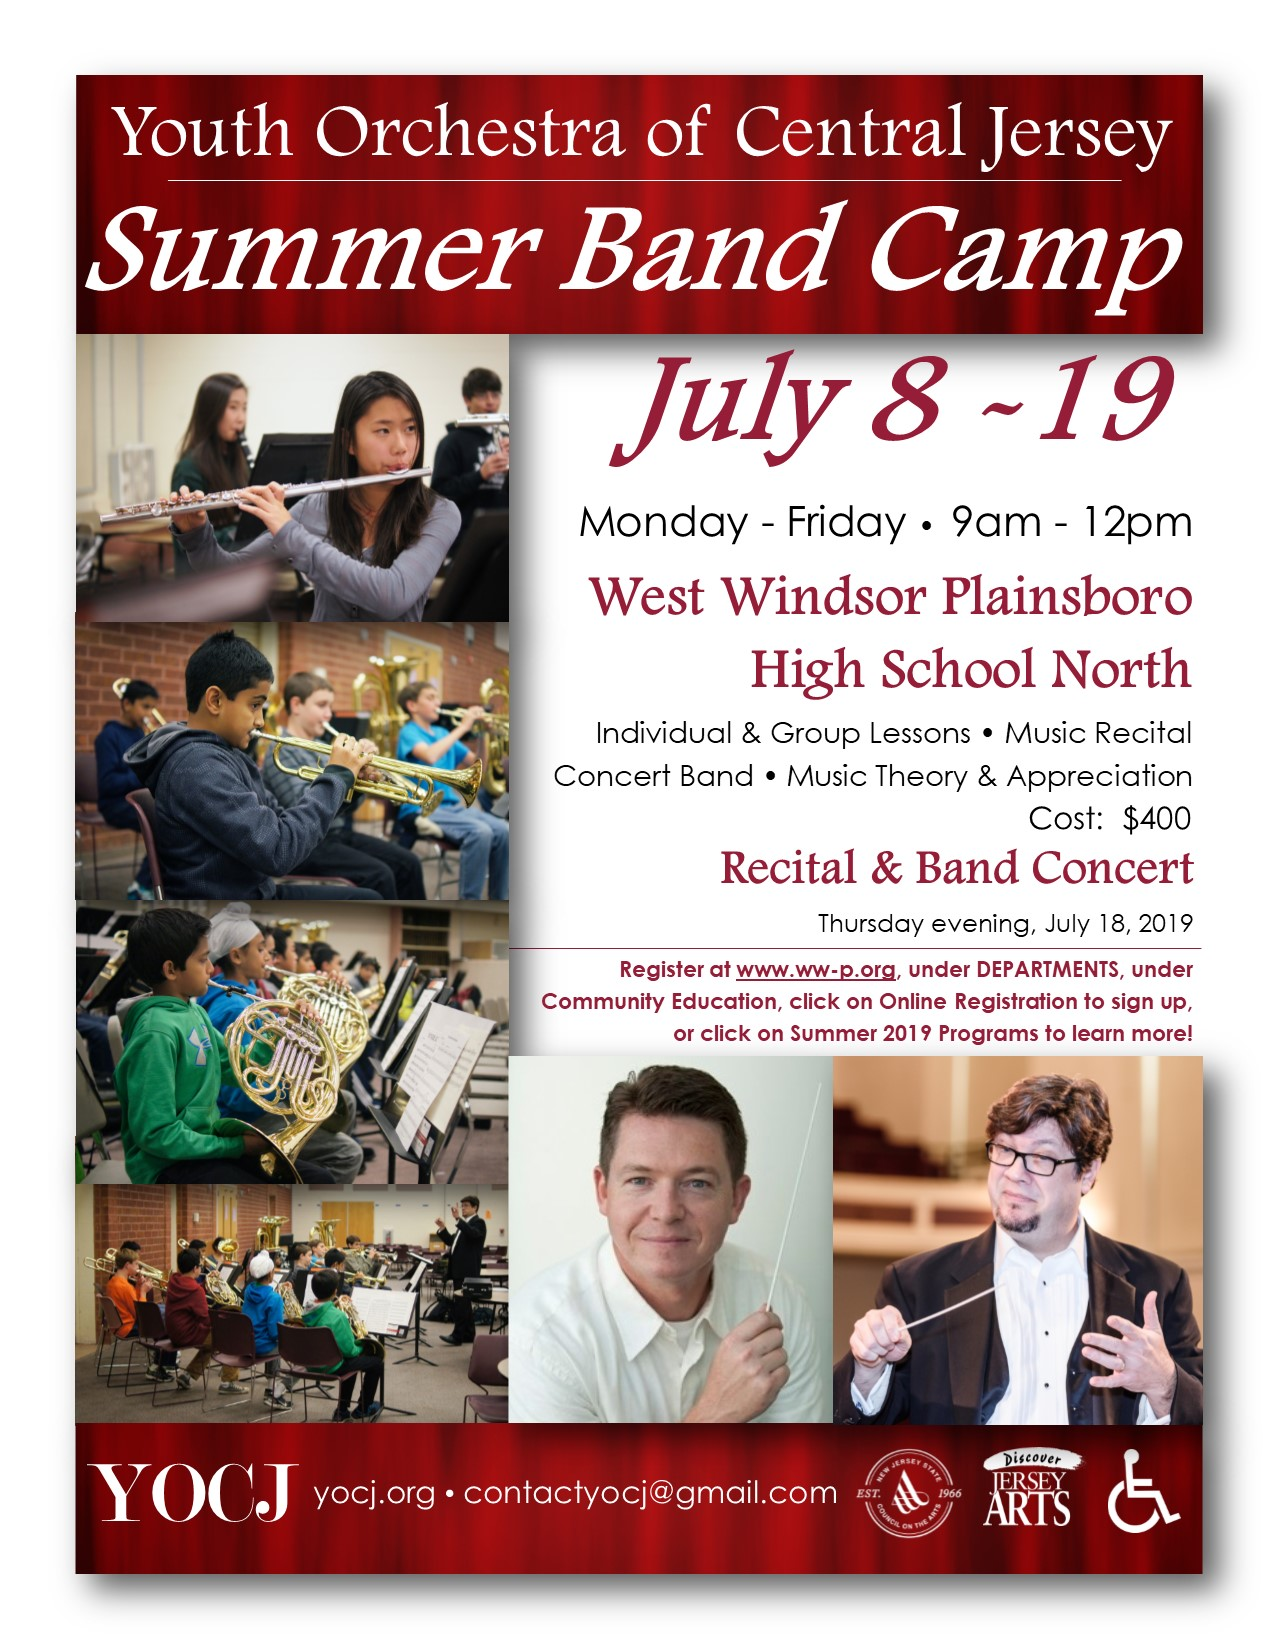 Arte Concert Jobs Summer 2019 Band Camp Youth Orchestra Of Central Jersey